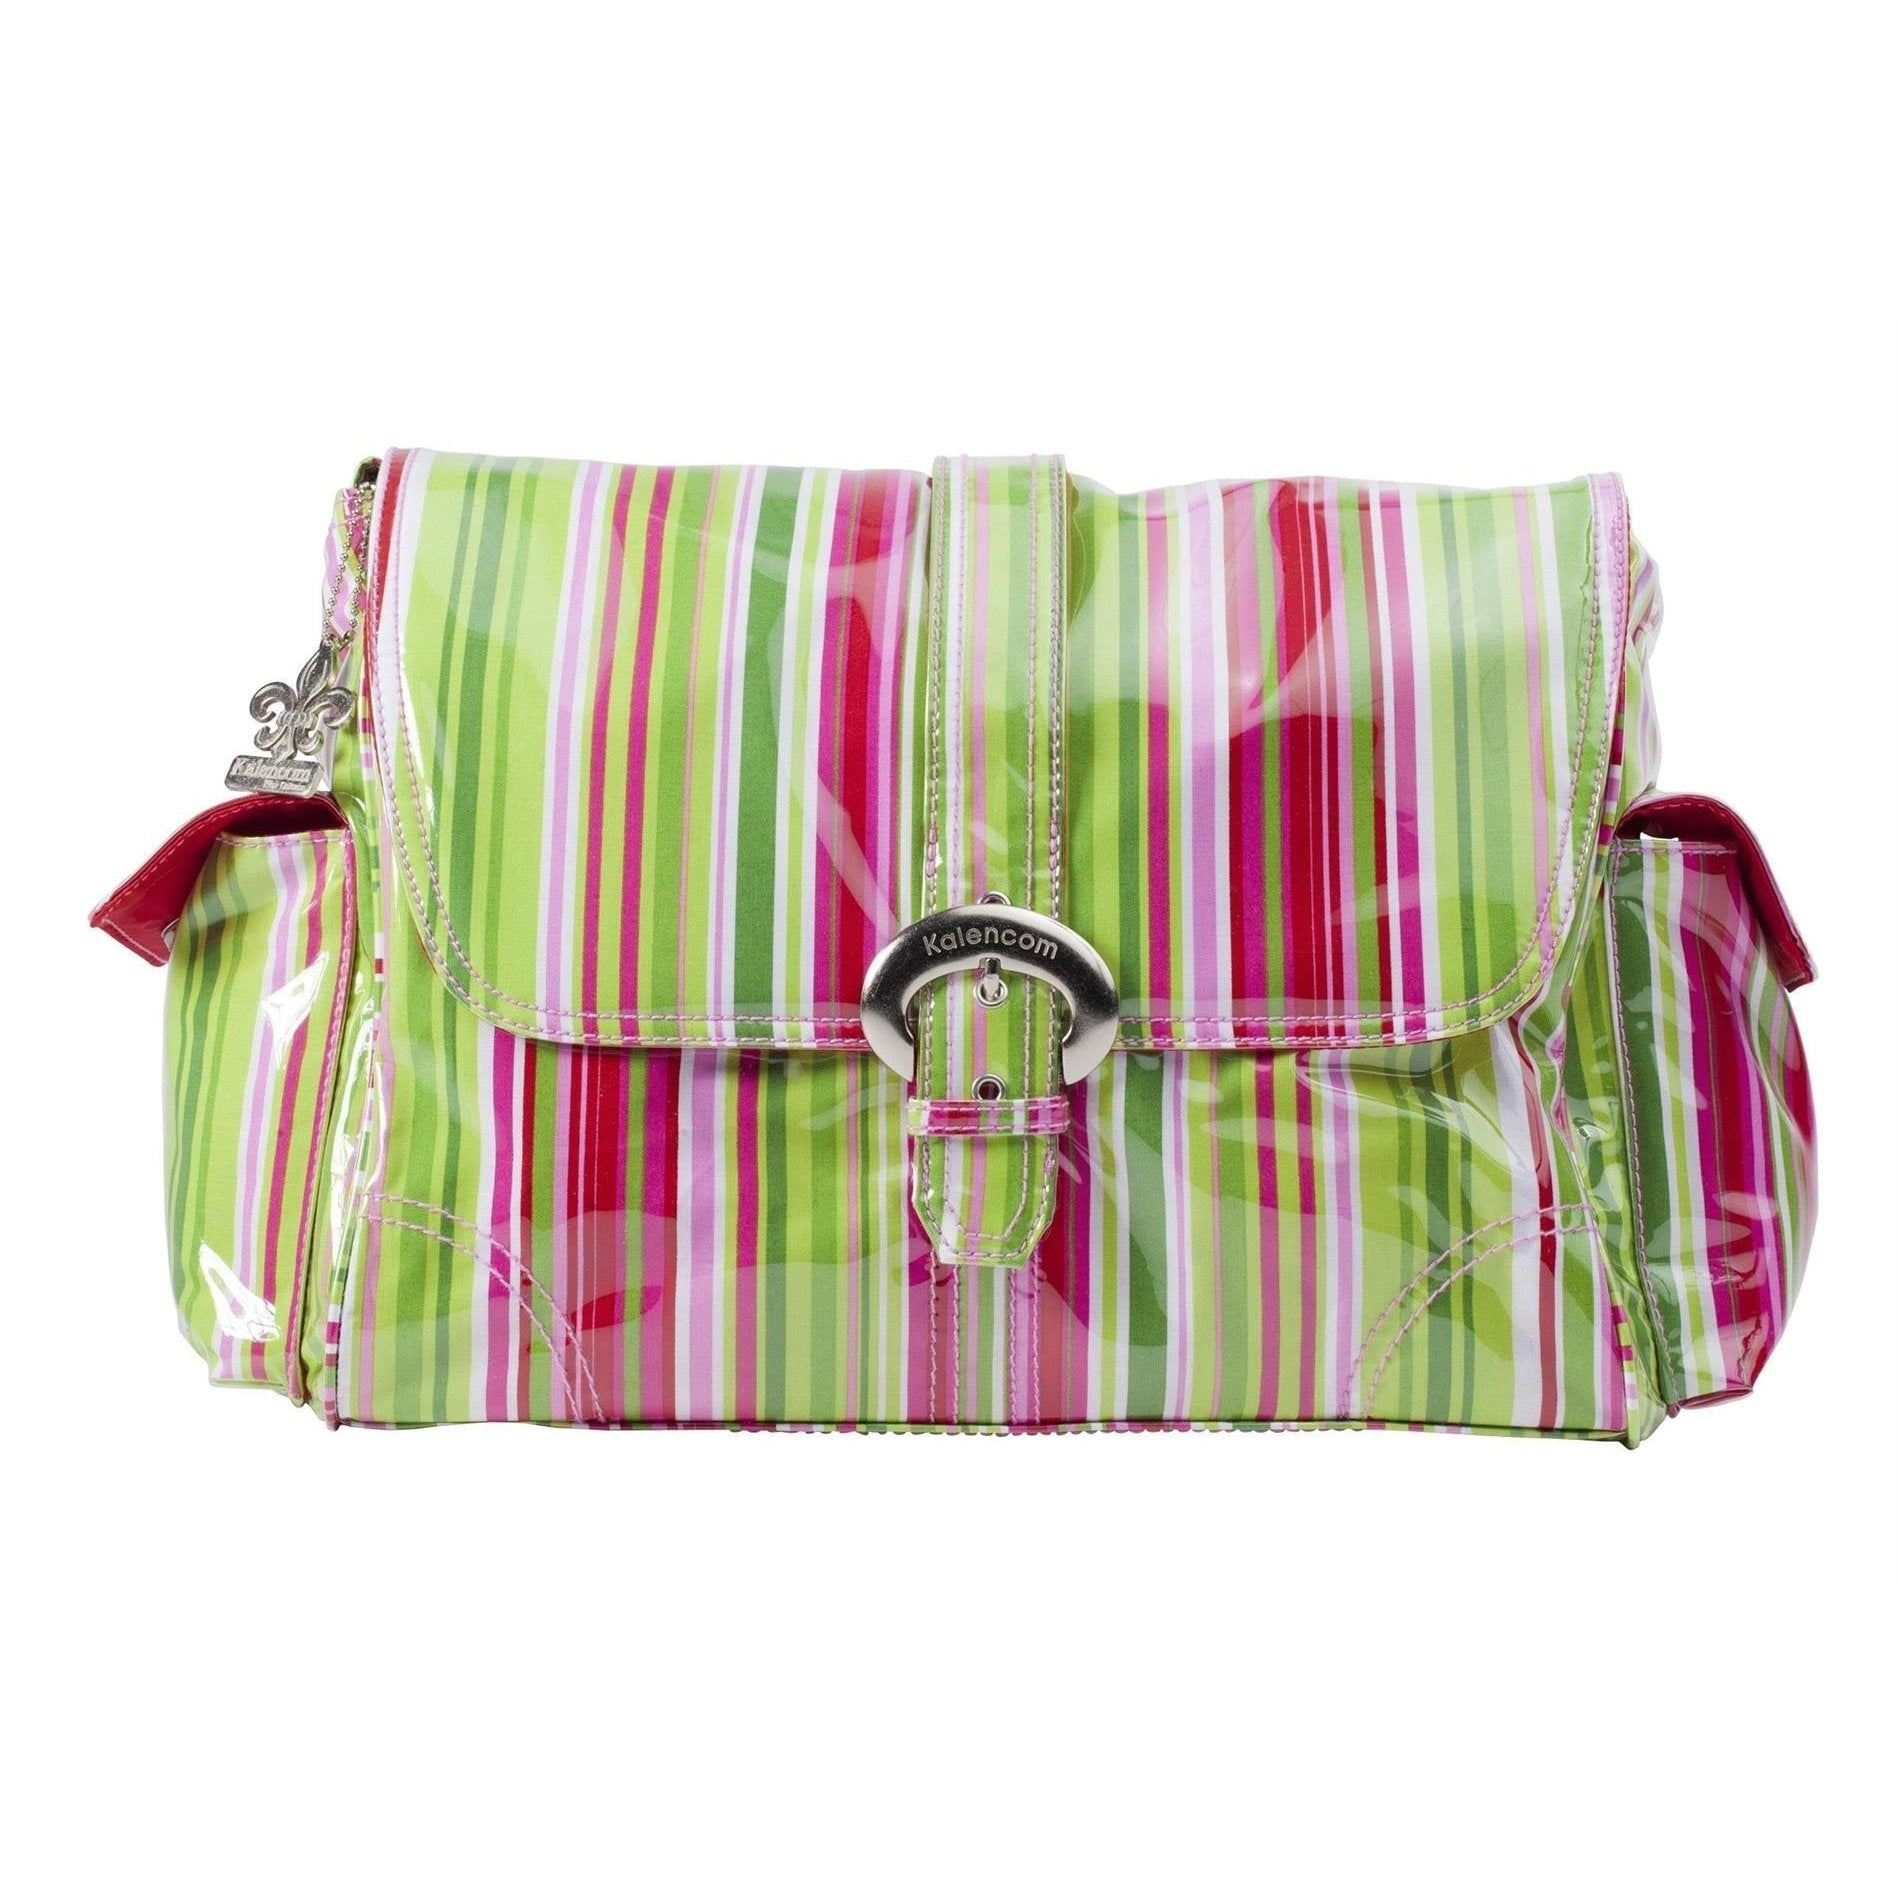 Jazz Stripes Ruby Laminated Buckle Diaper Bag | Style 2960 - Kalencom-Diaper Bags-Jack and Jill Boutique